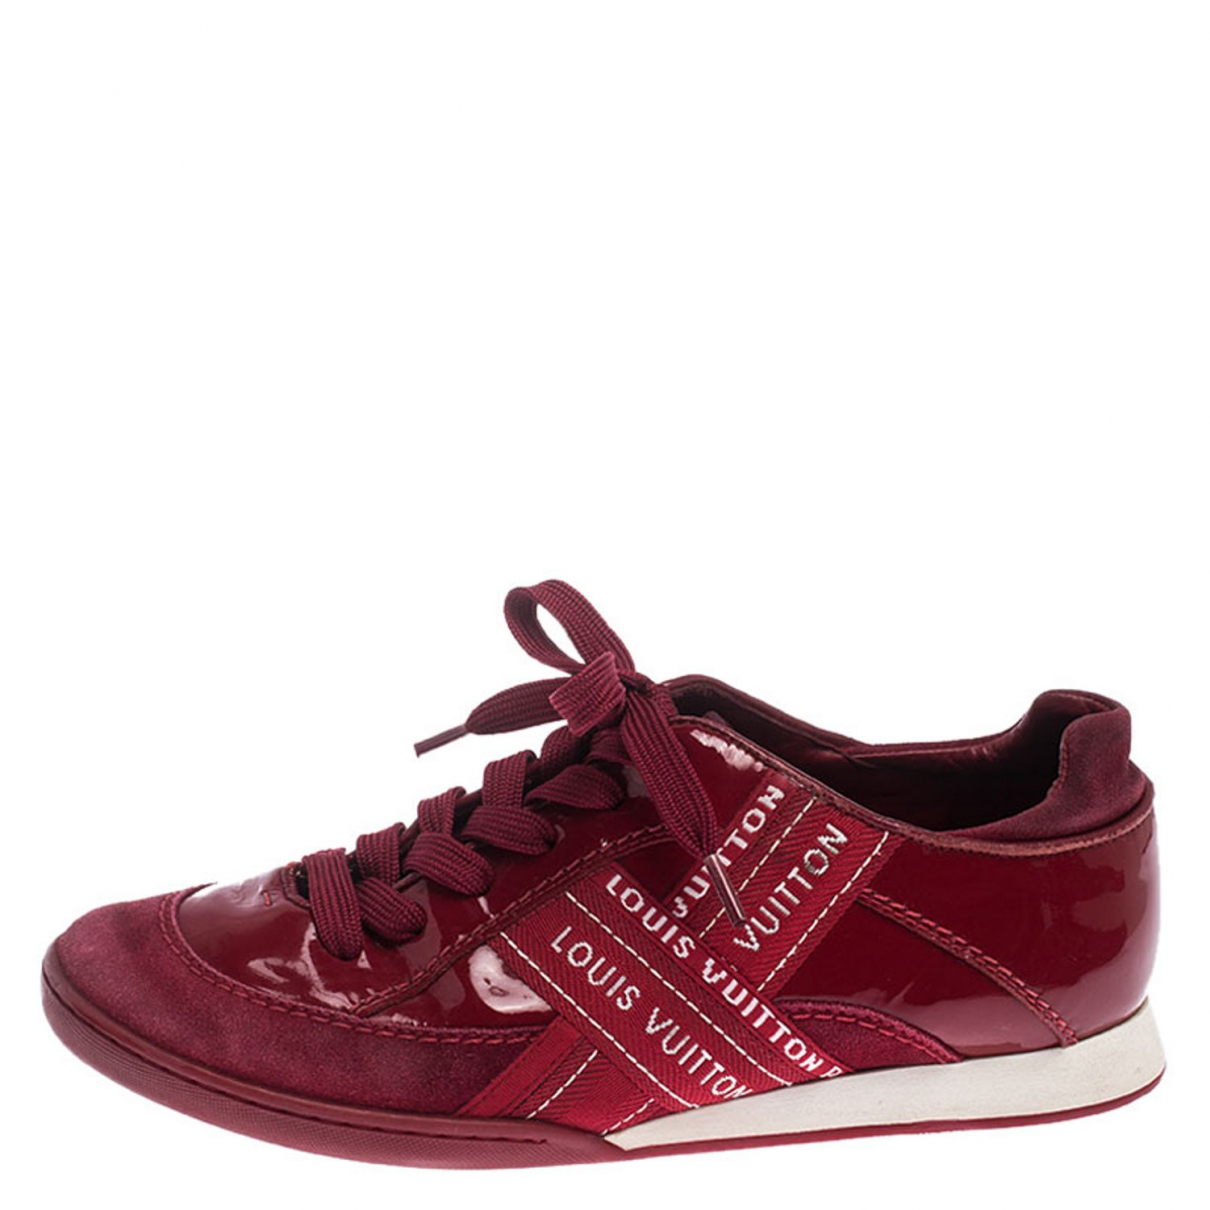 Louis Vuitton \N Red Leather Trainers for Women 6 US